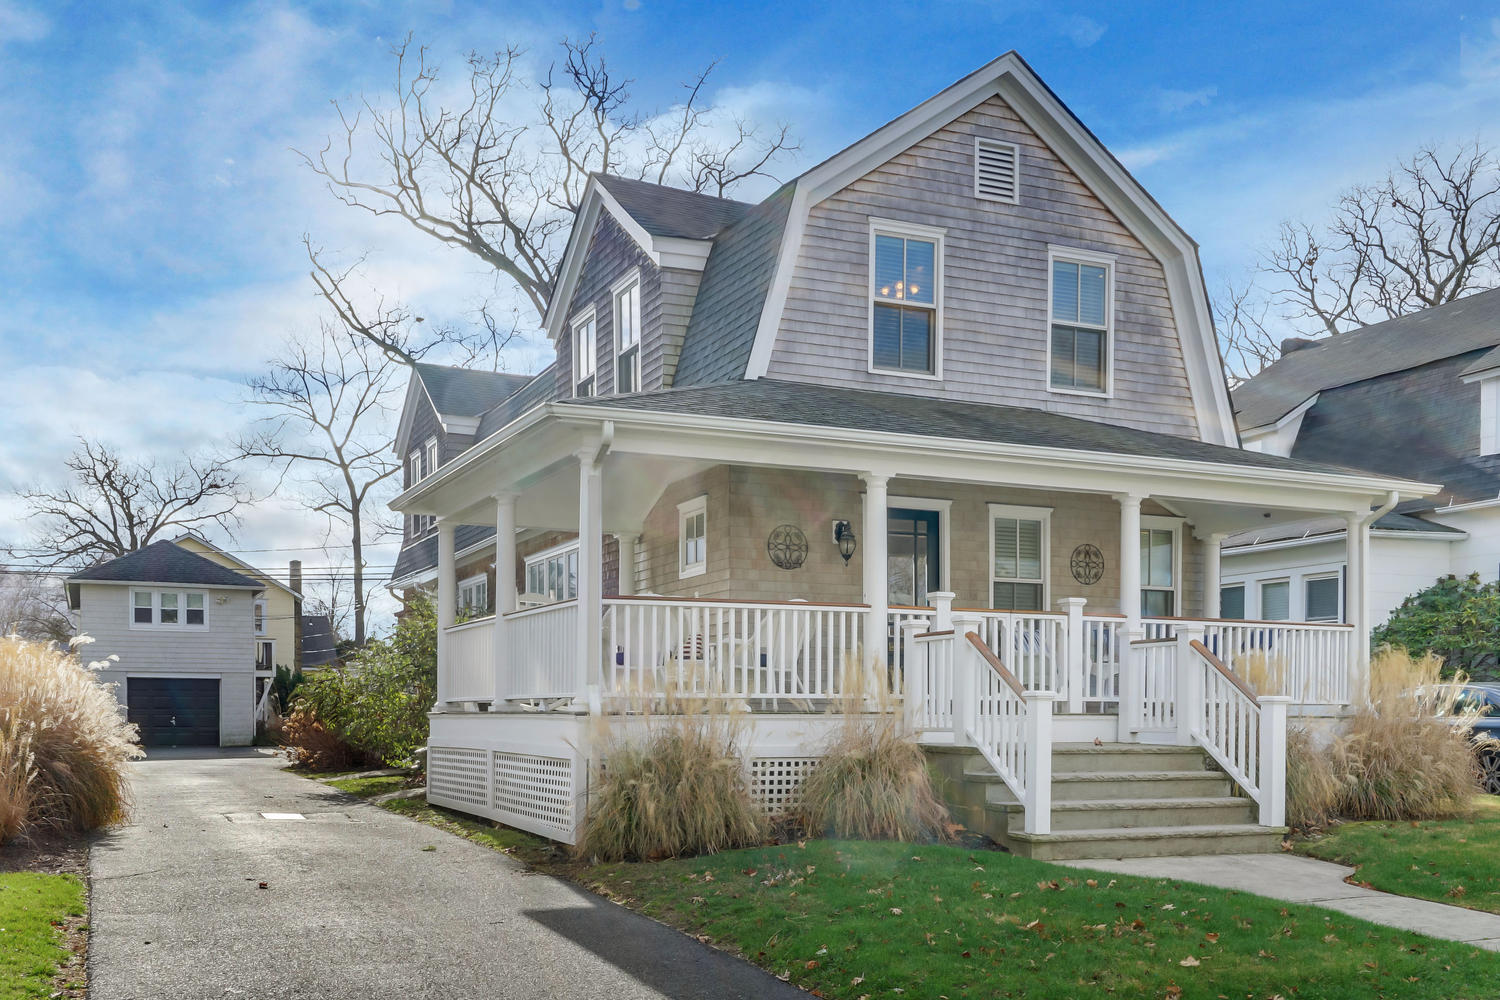 Single Family Home for Sale at A Classic Spring Lake Residence! 411 Jersey Avenue Spring Lake, New Jersey 07762 United States